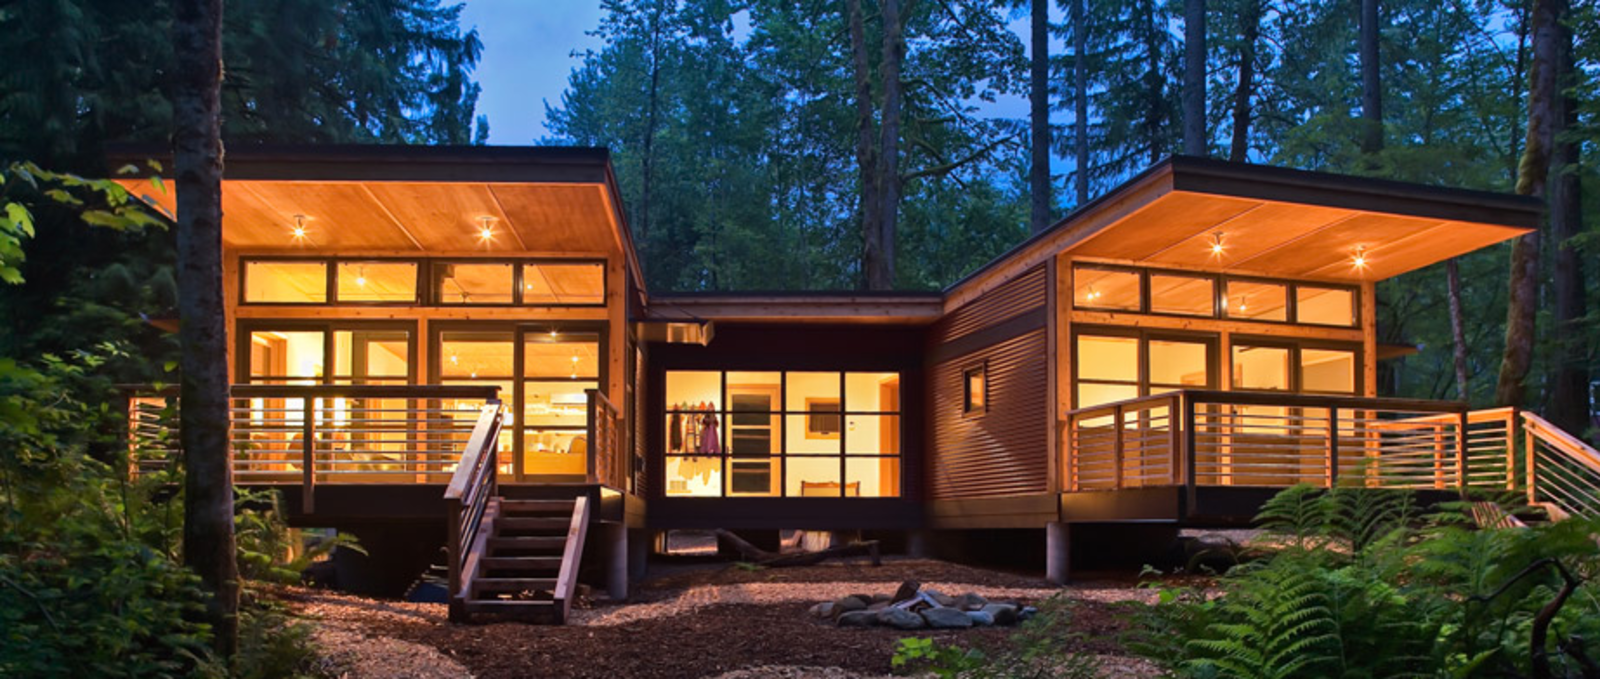 8 Prefab Firms In Washington Aiming To Solve The Areau0027s Housing Shortages